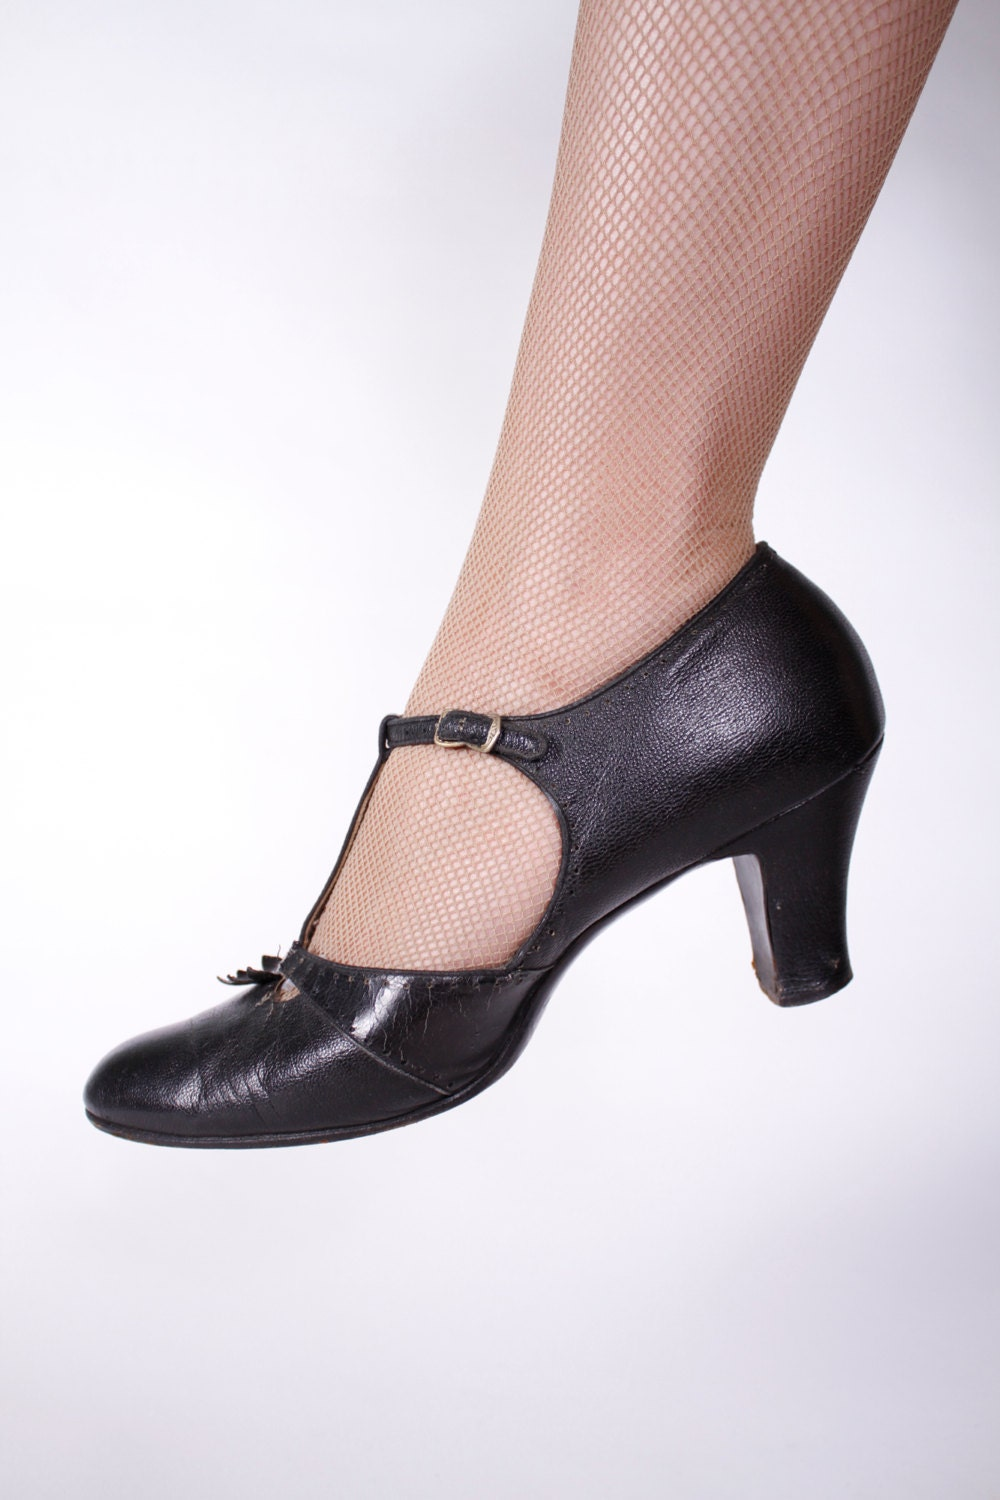 1930s vintage shoes black leather t gatsby shoes with